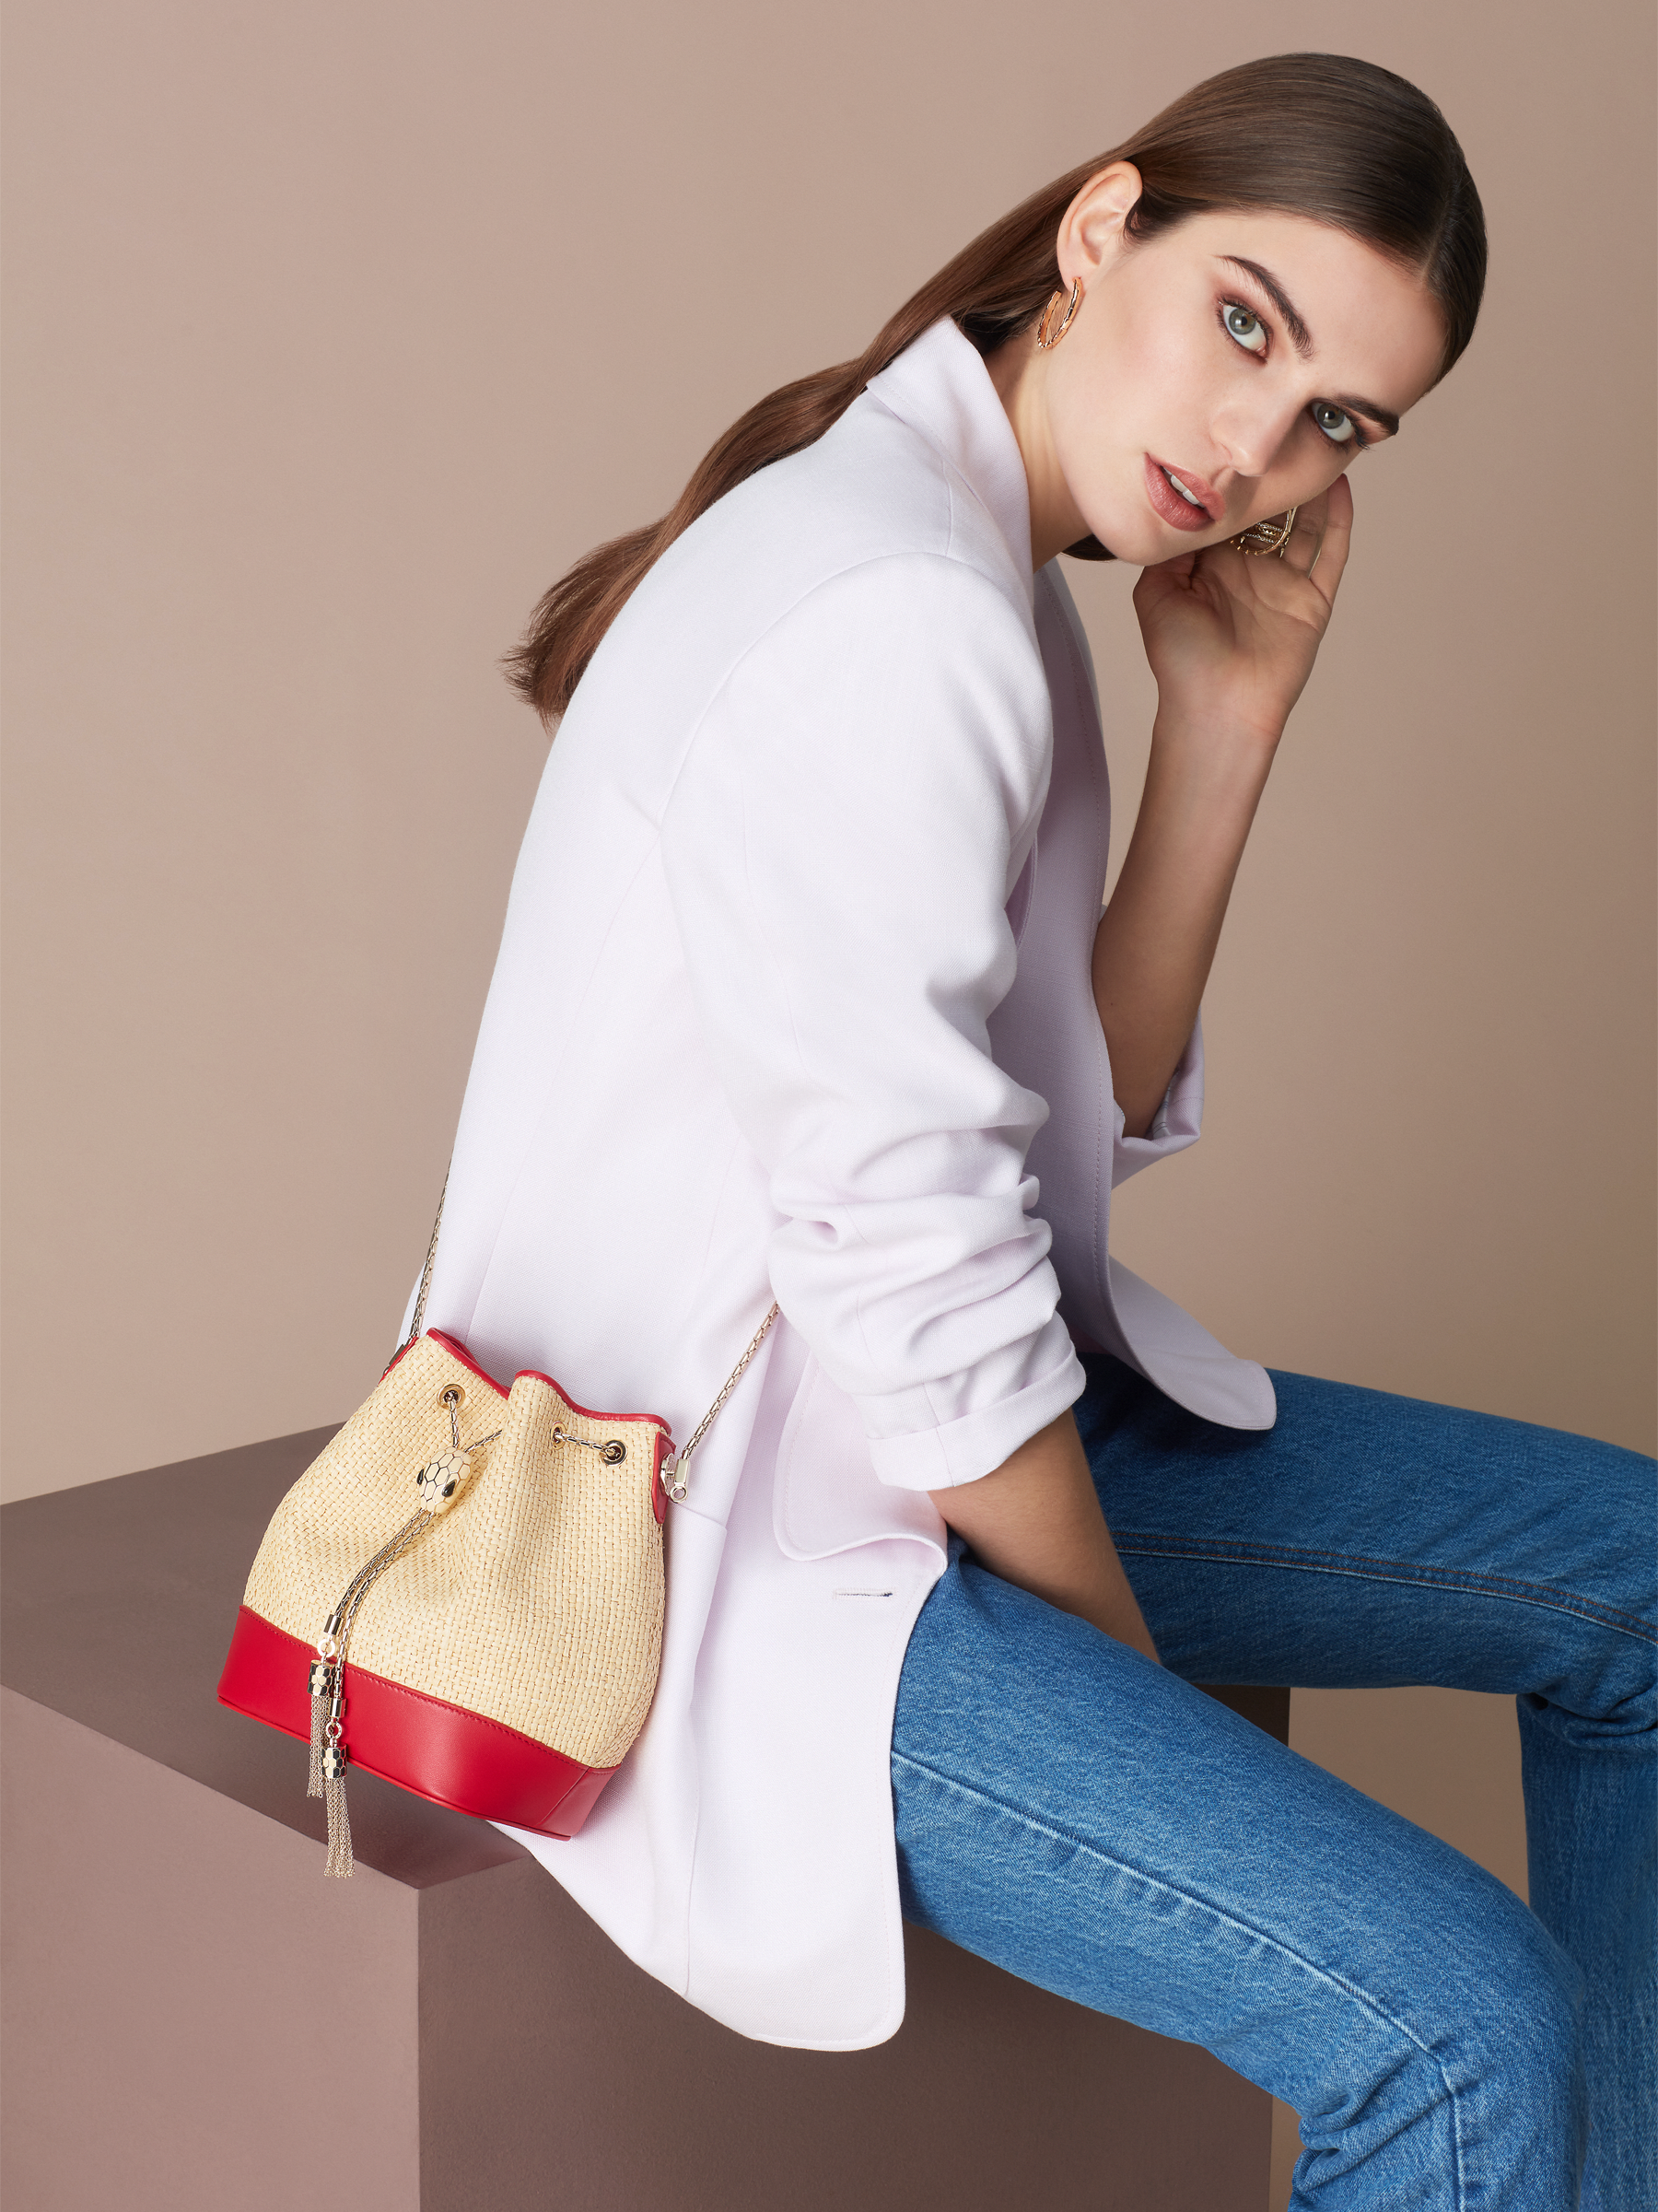 """Serpenti Forever"" small bucket bag in beige raffia and Carmine Jasper red calfskin, with Carmine Jasper red nappa leather internal lining. Alluring light gold-plated brass snakehead closure enhanced with full matte Natural beige enamel and black onyx eyes. 290959 image 3"